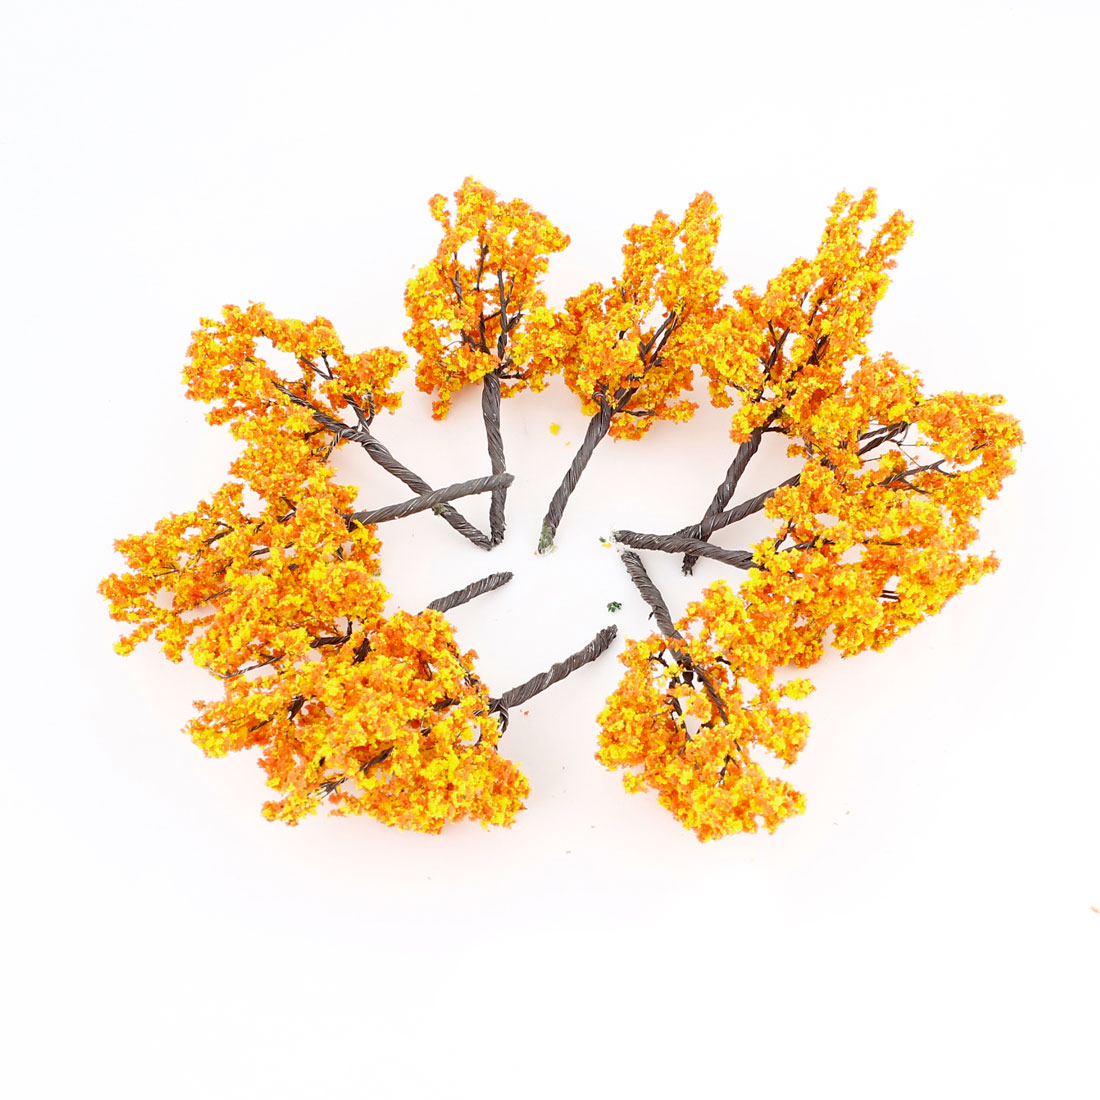 10 Pcs Orange Yellow Scenery Model Flower Tree 11cm High Scale 1:75-100